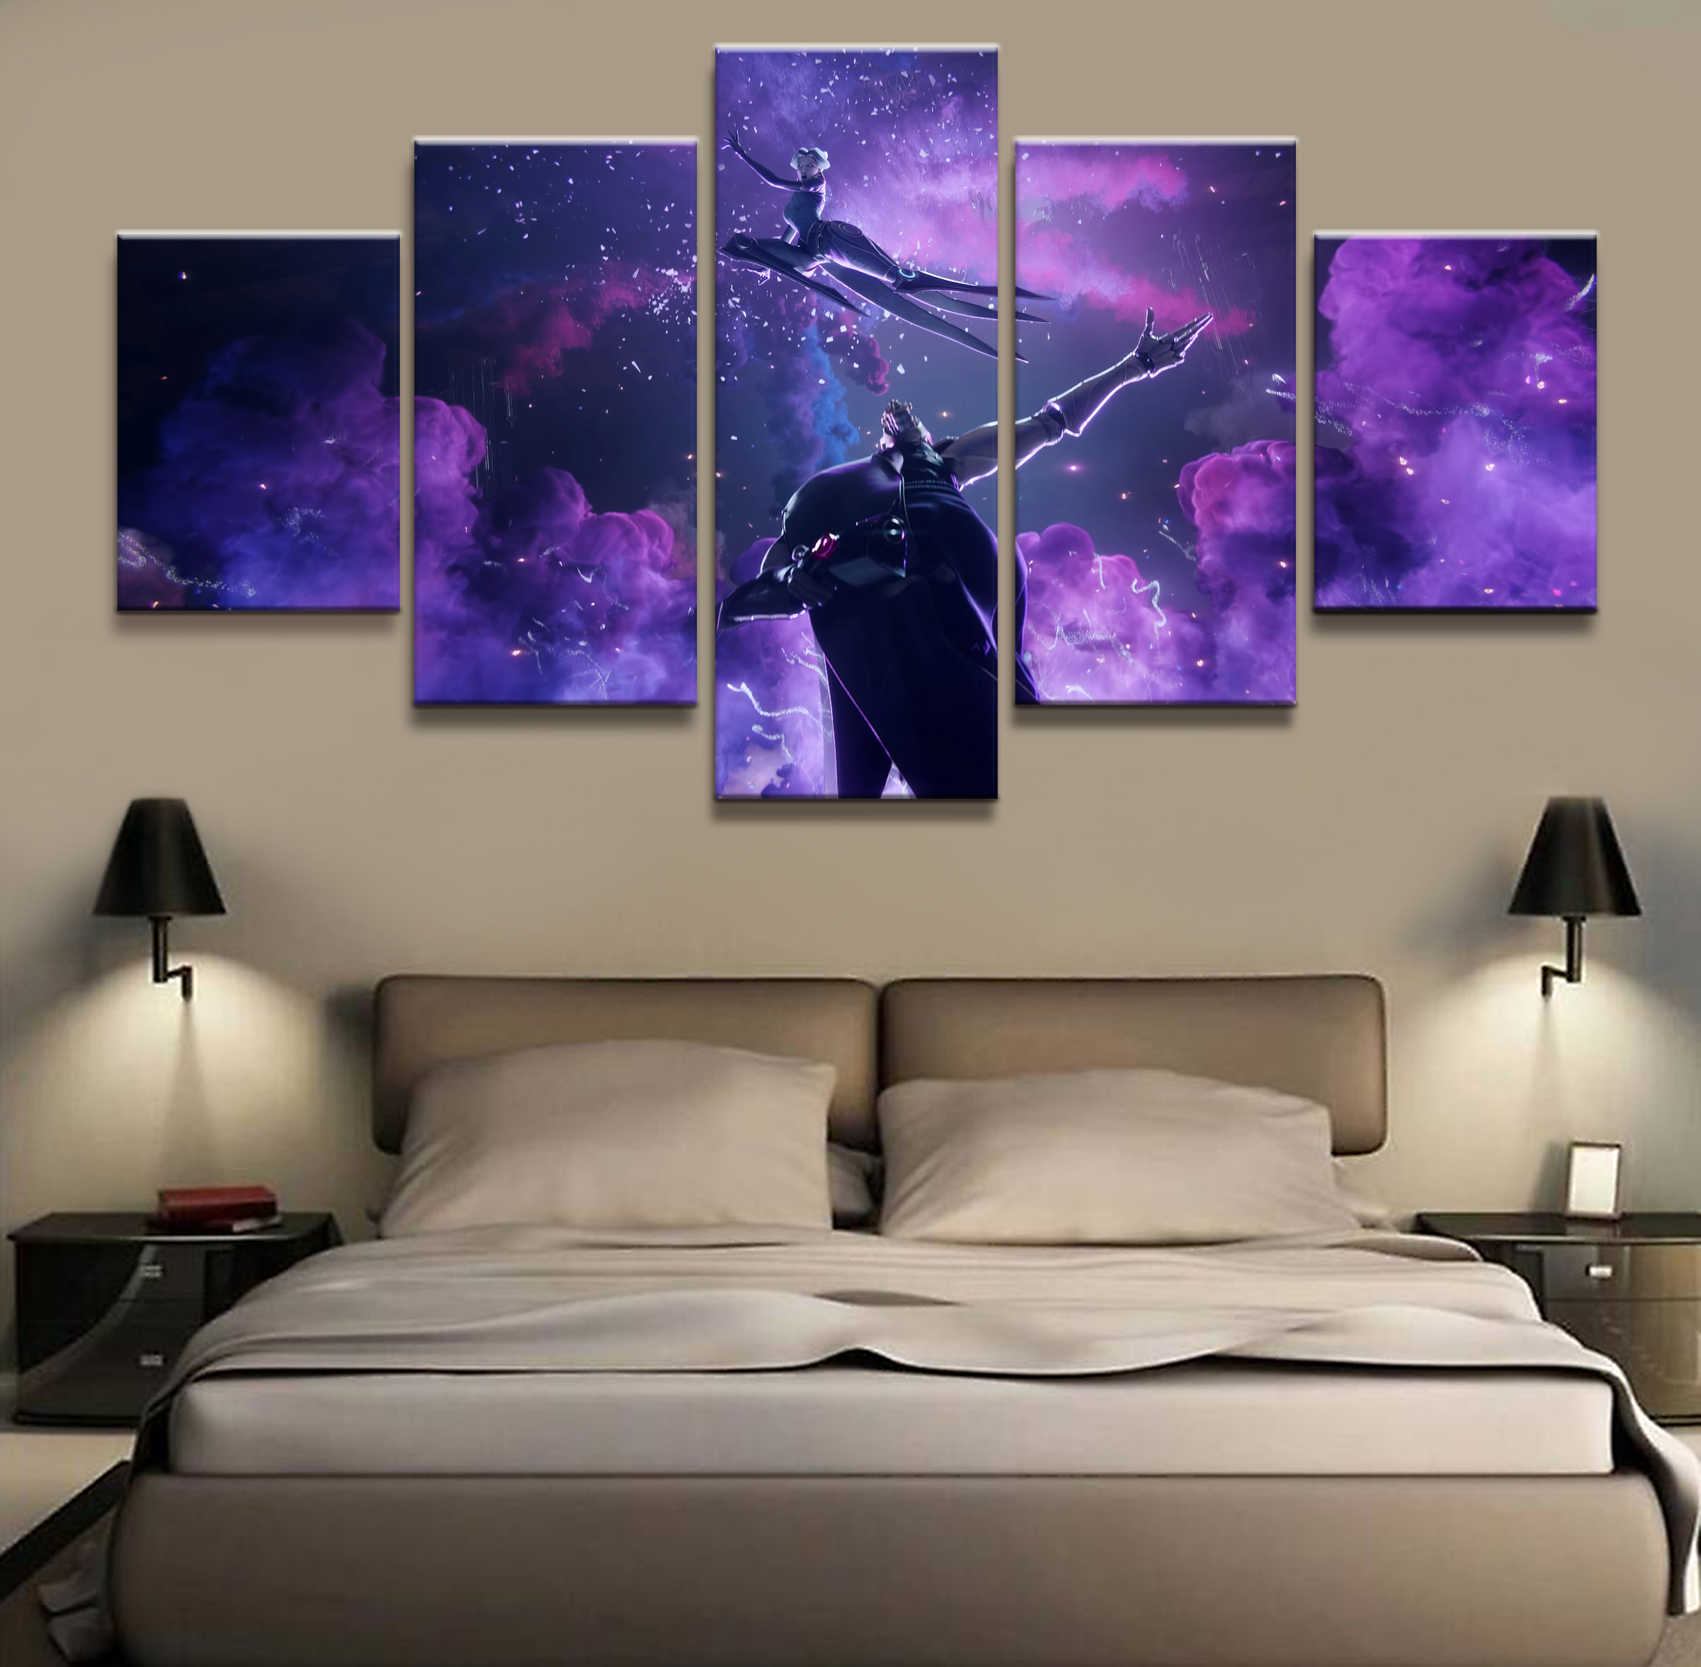 5 Panel Camille LOL League of Legends Game Canvas Printed Painting For Living Room Wall Art Decor Picture Works Poster Wholesale